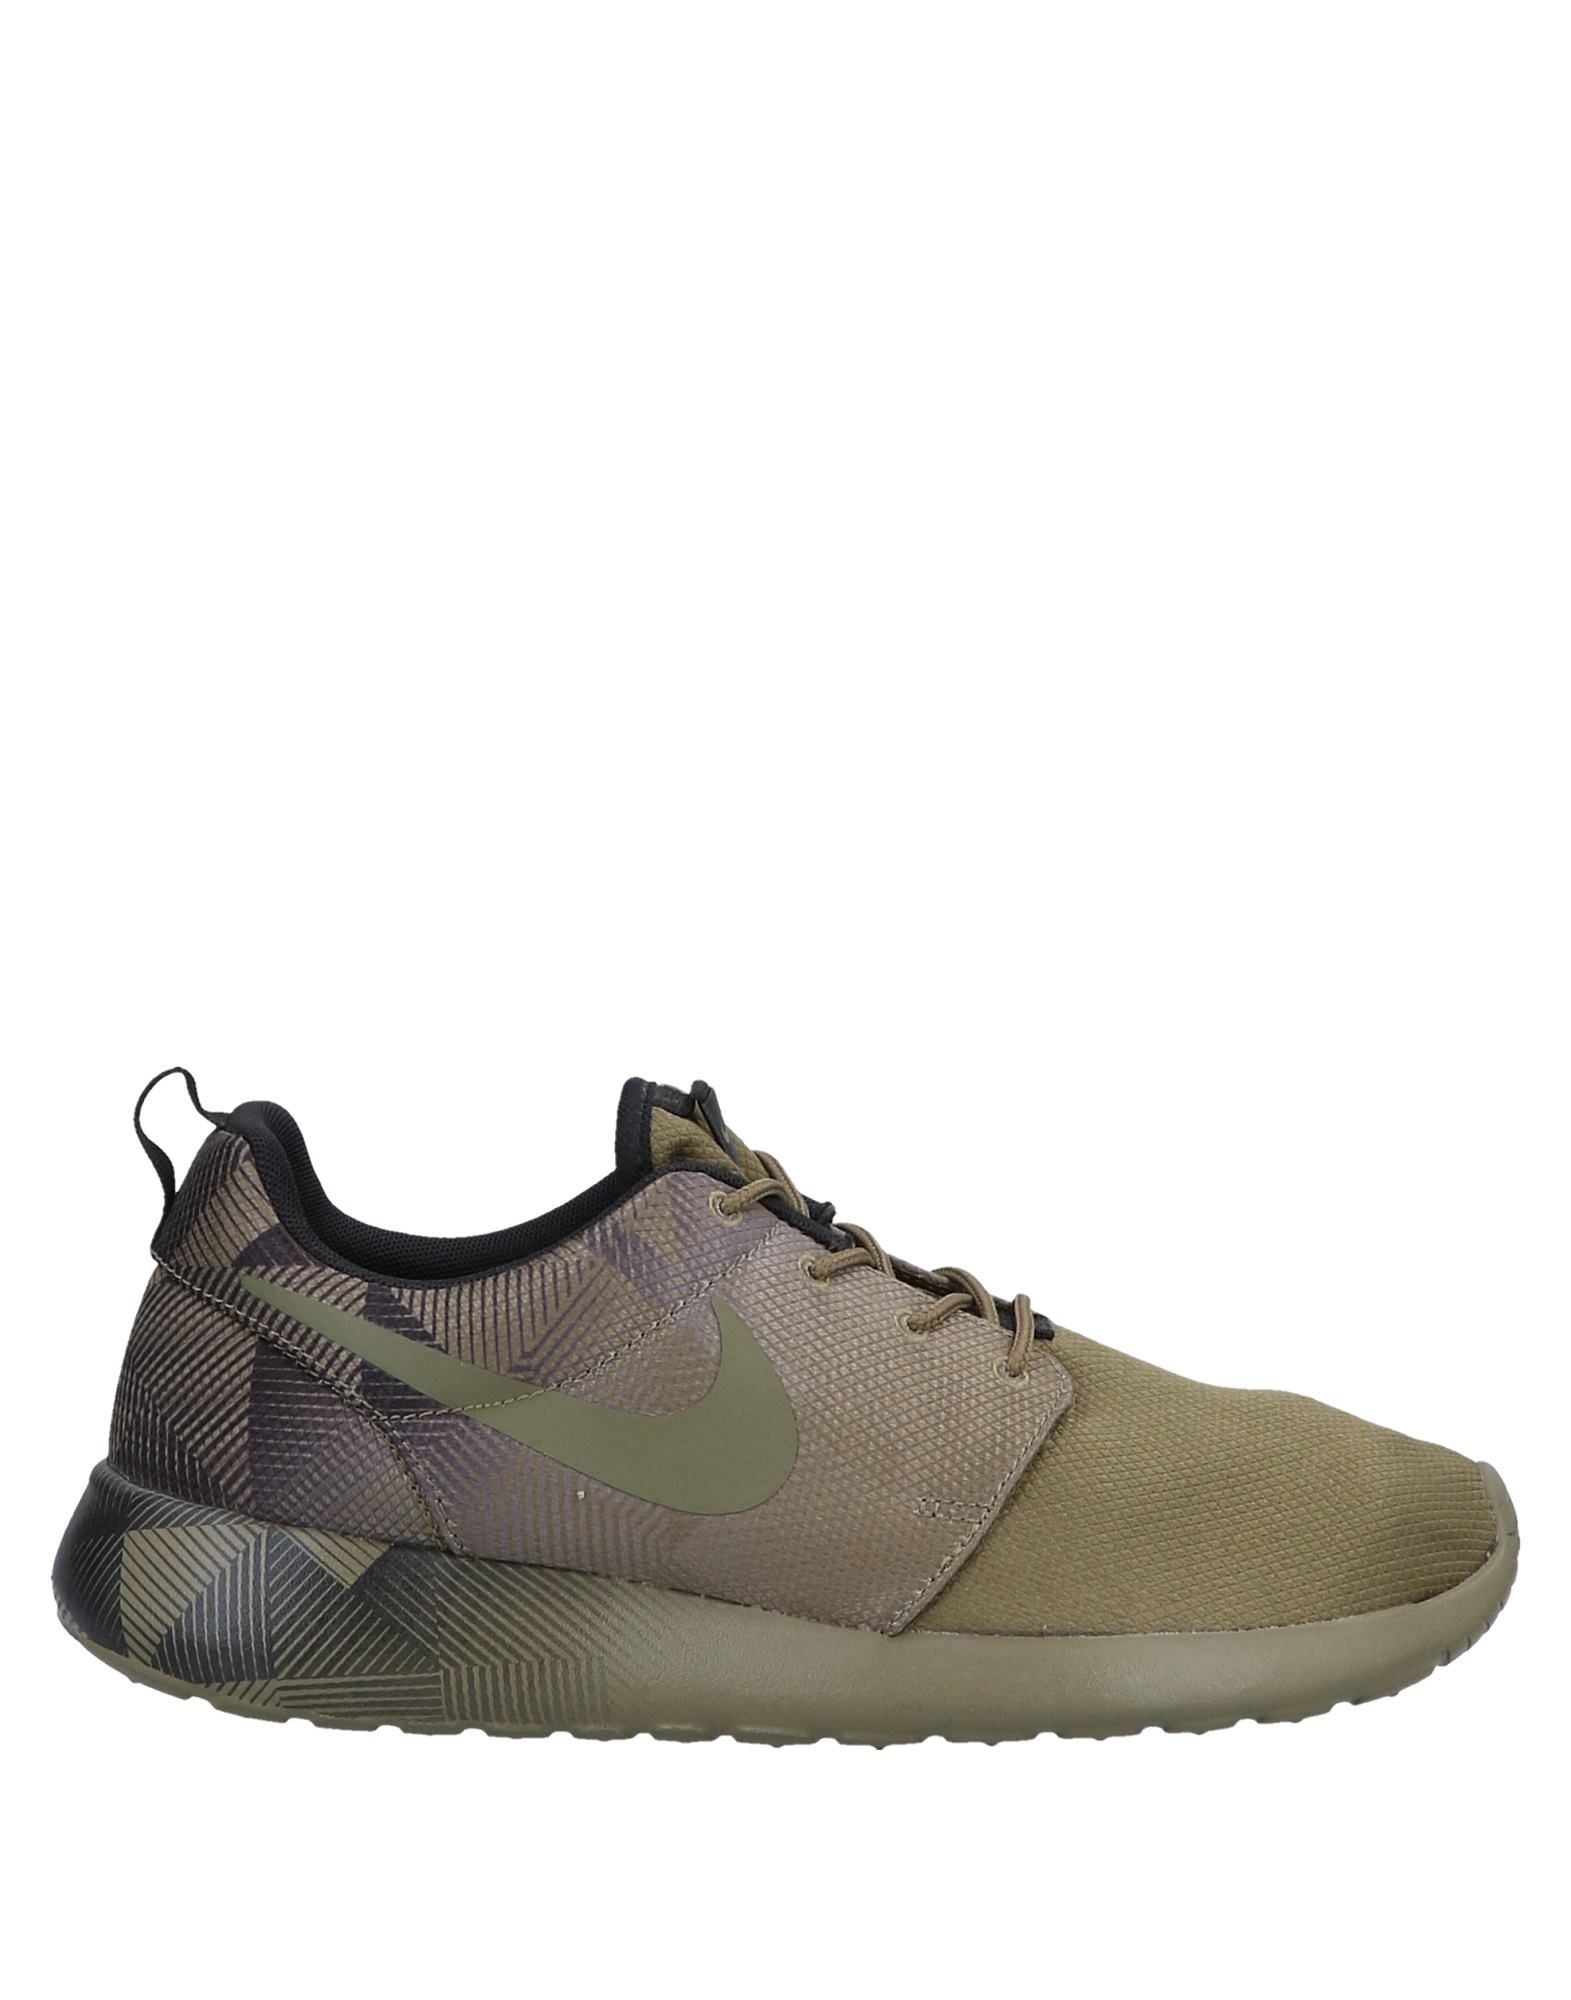 Turnscarpe Nike uomo - - - 11571461EQ 613